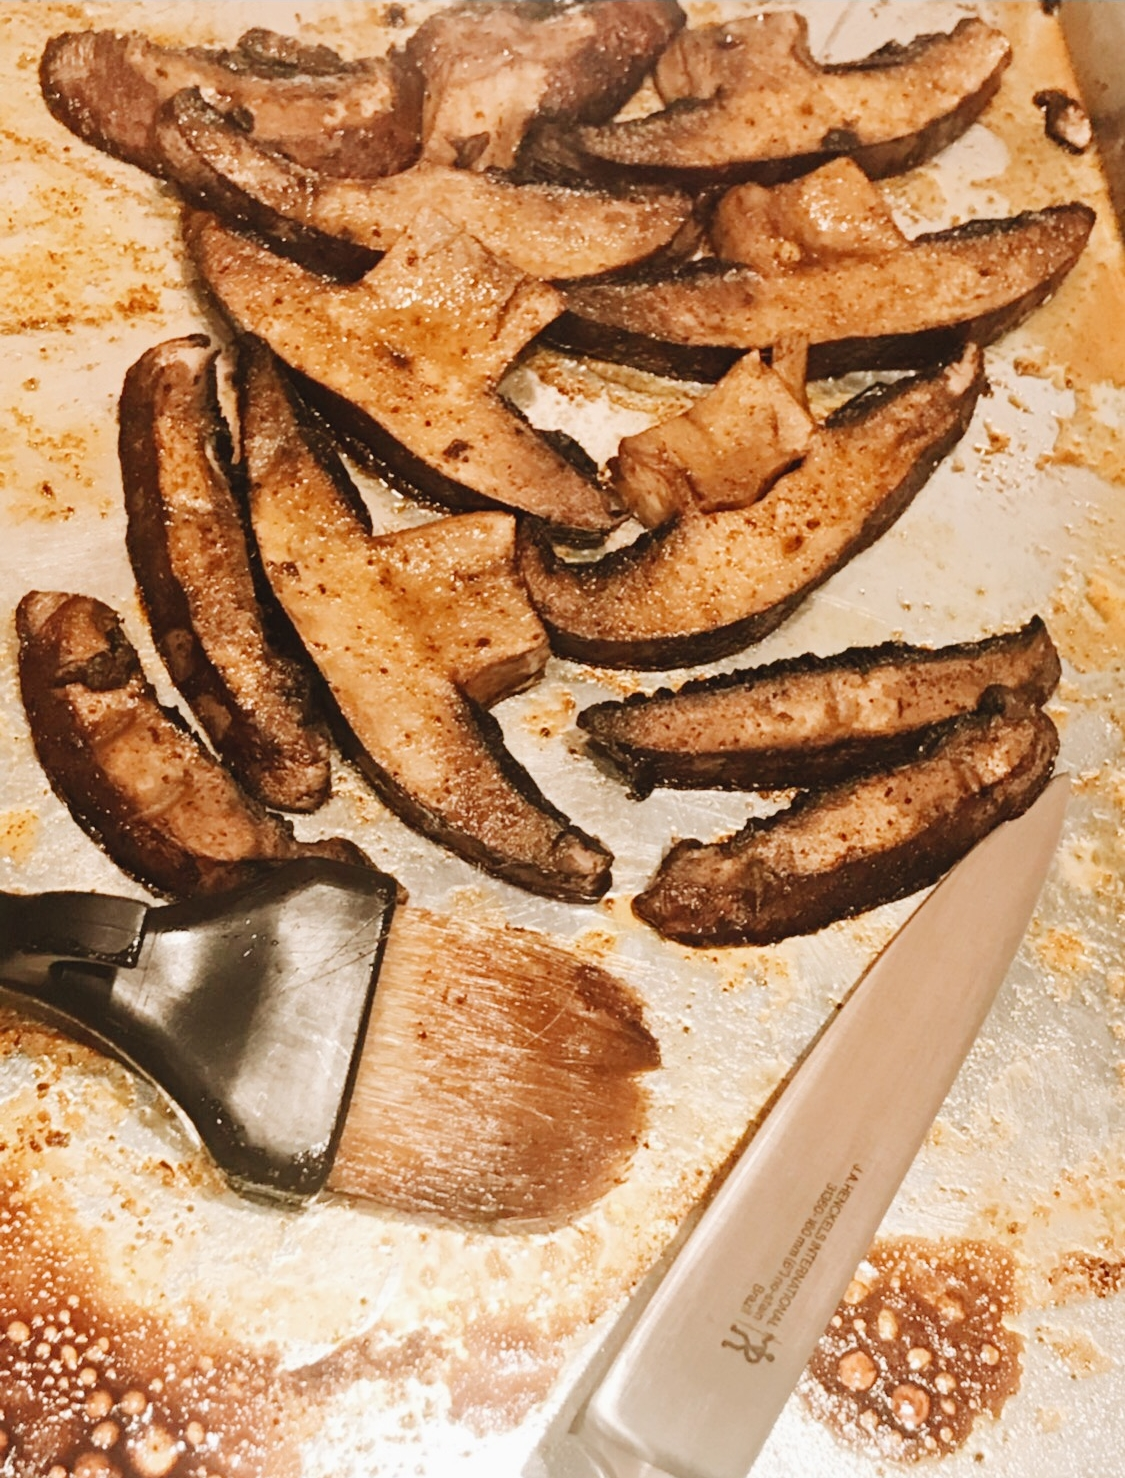 Portobello Mushrooms on a cookie sheet placed in my oven. Great idea for the grill too!